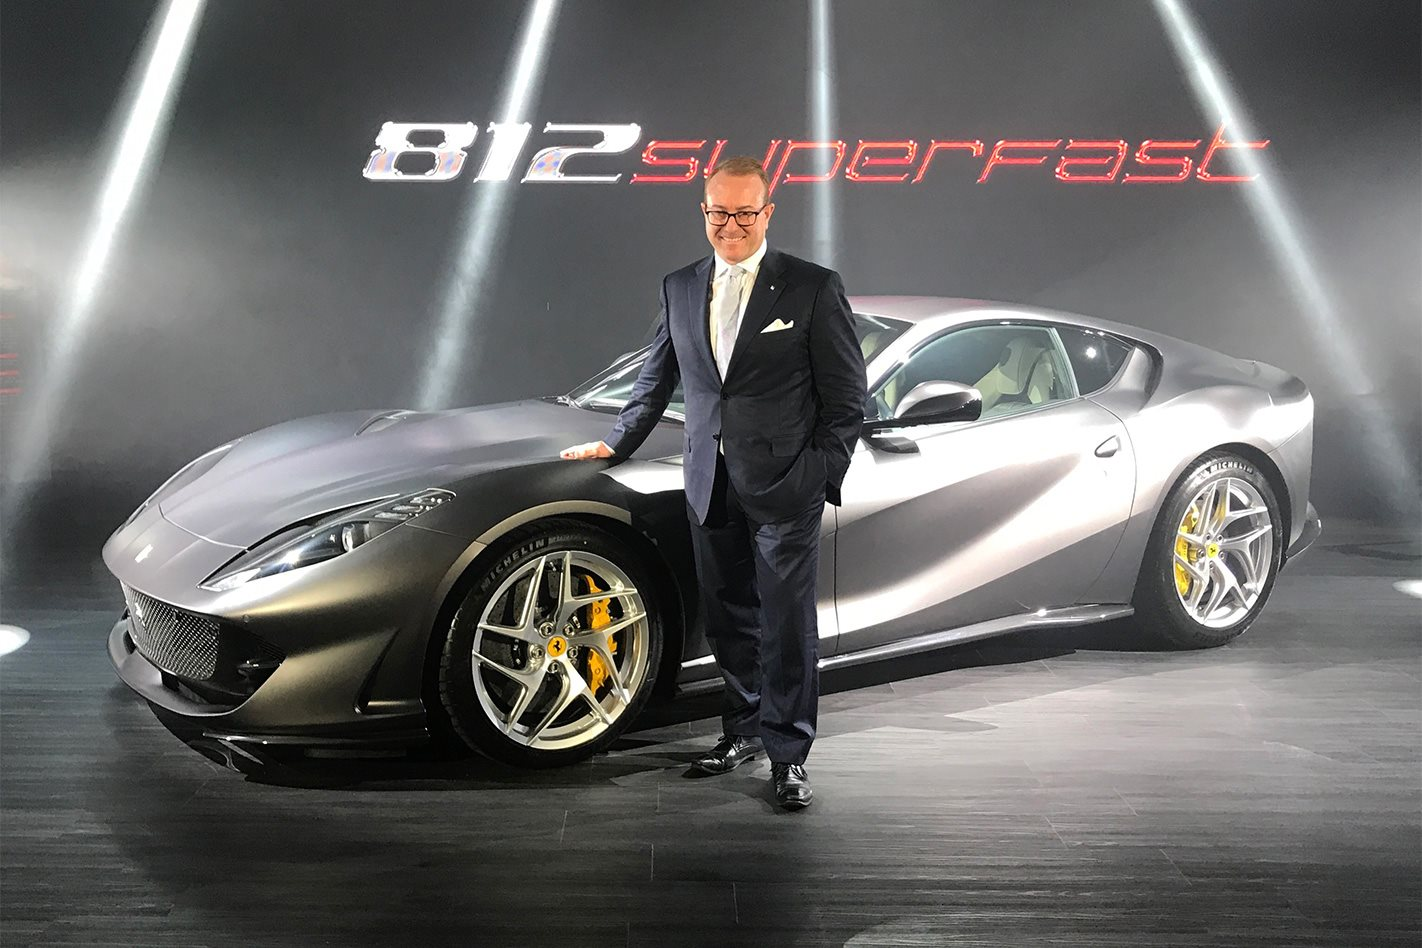 2018 ferrari 812 for sale.  ferrari speaking to motor at the 812u0027s australian reveal in melbourne ferrari  australasia ceo herbert appleroth explained price cut u201cwhat we started with  for 2018 ferrari 812 for sale